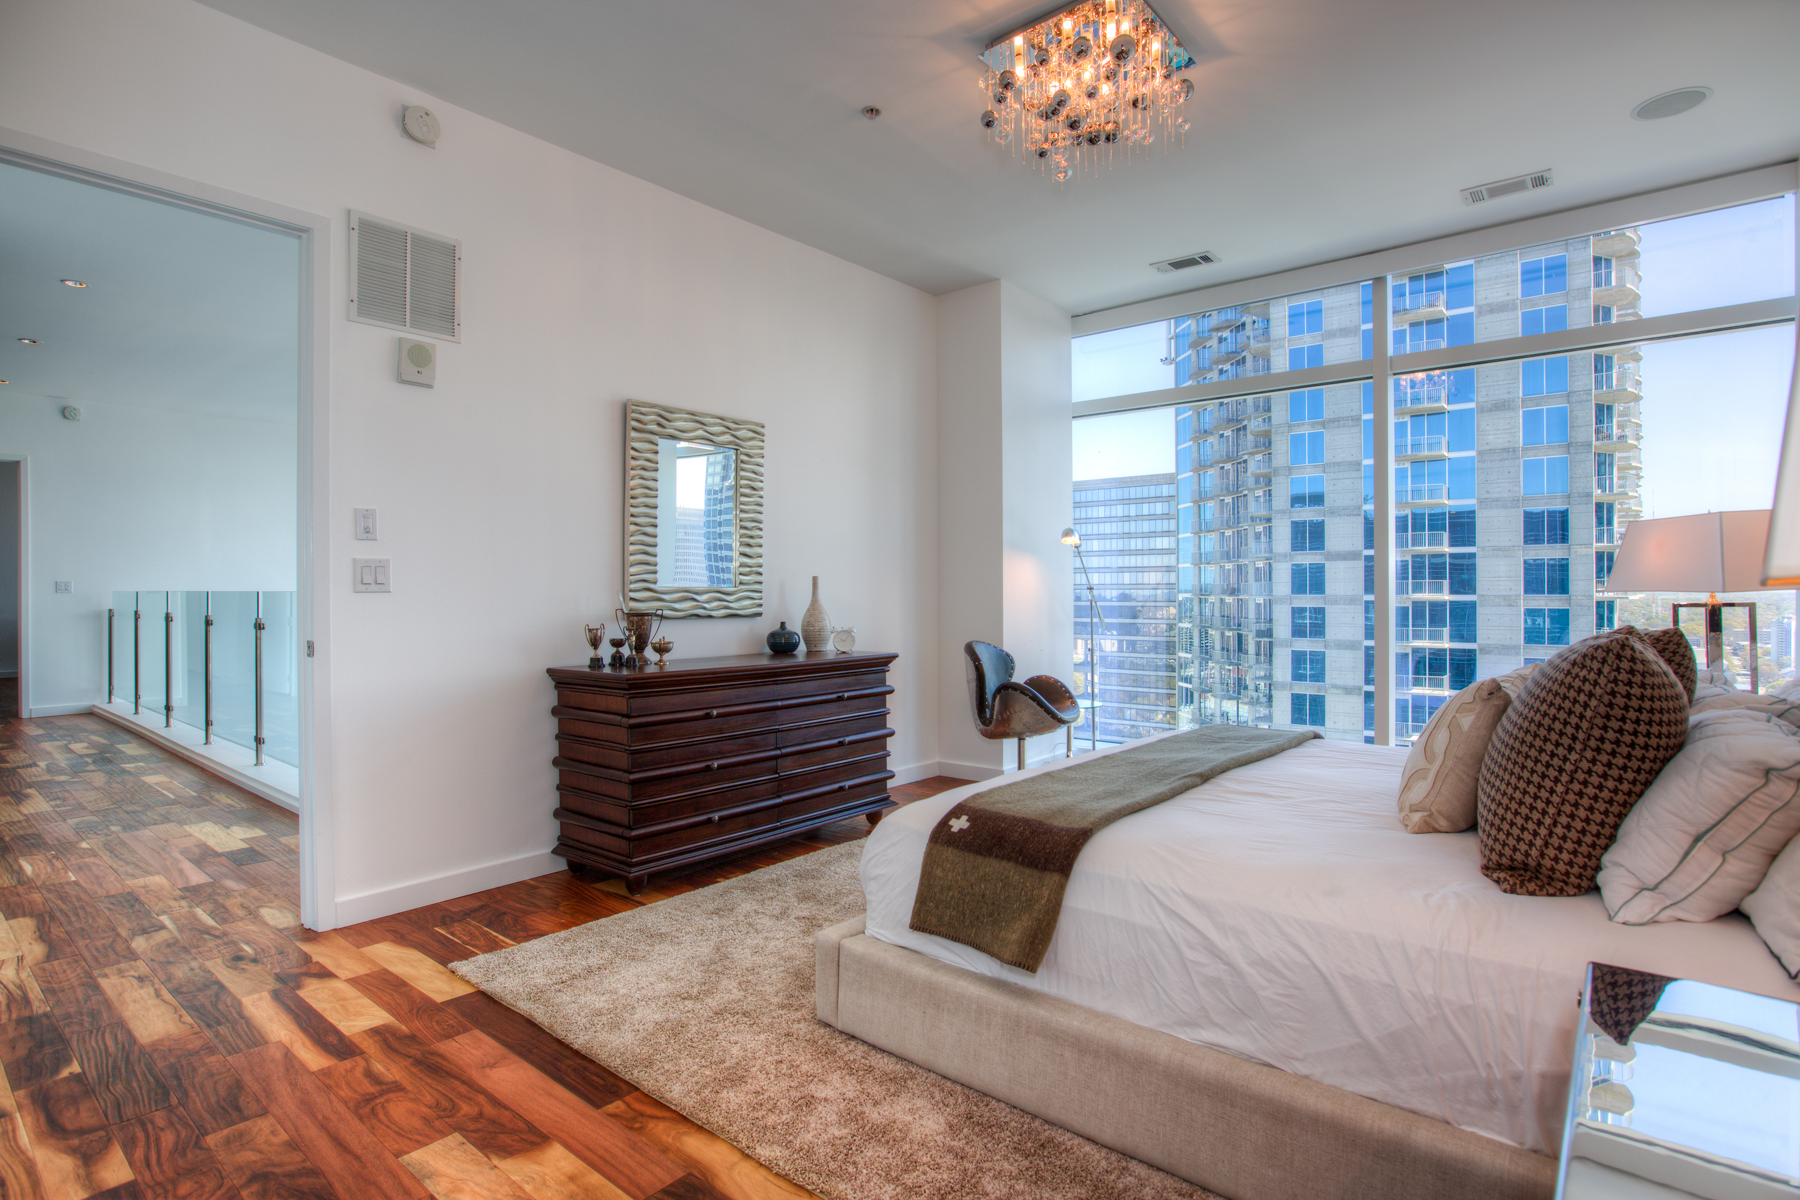 Additional photo for property listing at Sophisticated 2-Level Atlanta Penthouse with Luxury Hotel Amenities 45 Ivan Allen Jr Boulevard PH#2706 Atlanta, Γεωργια 30308 Ηνωμενεσ Πολιτειεσ